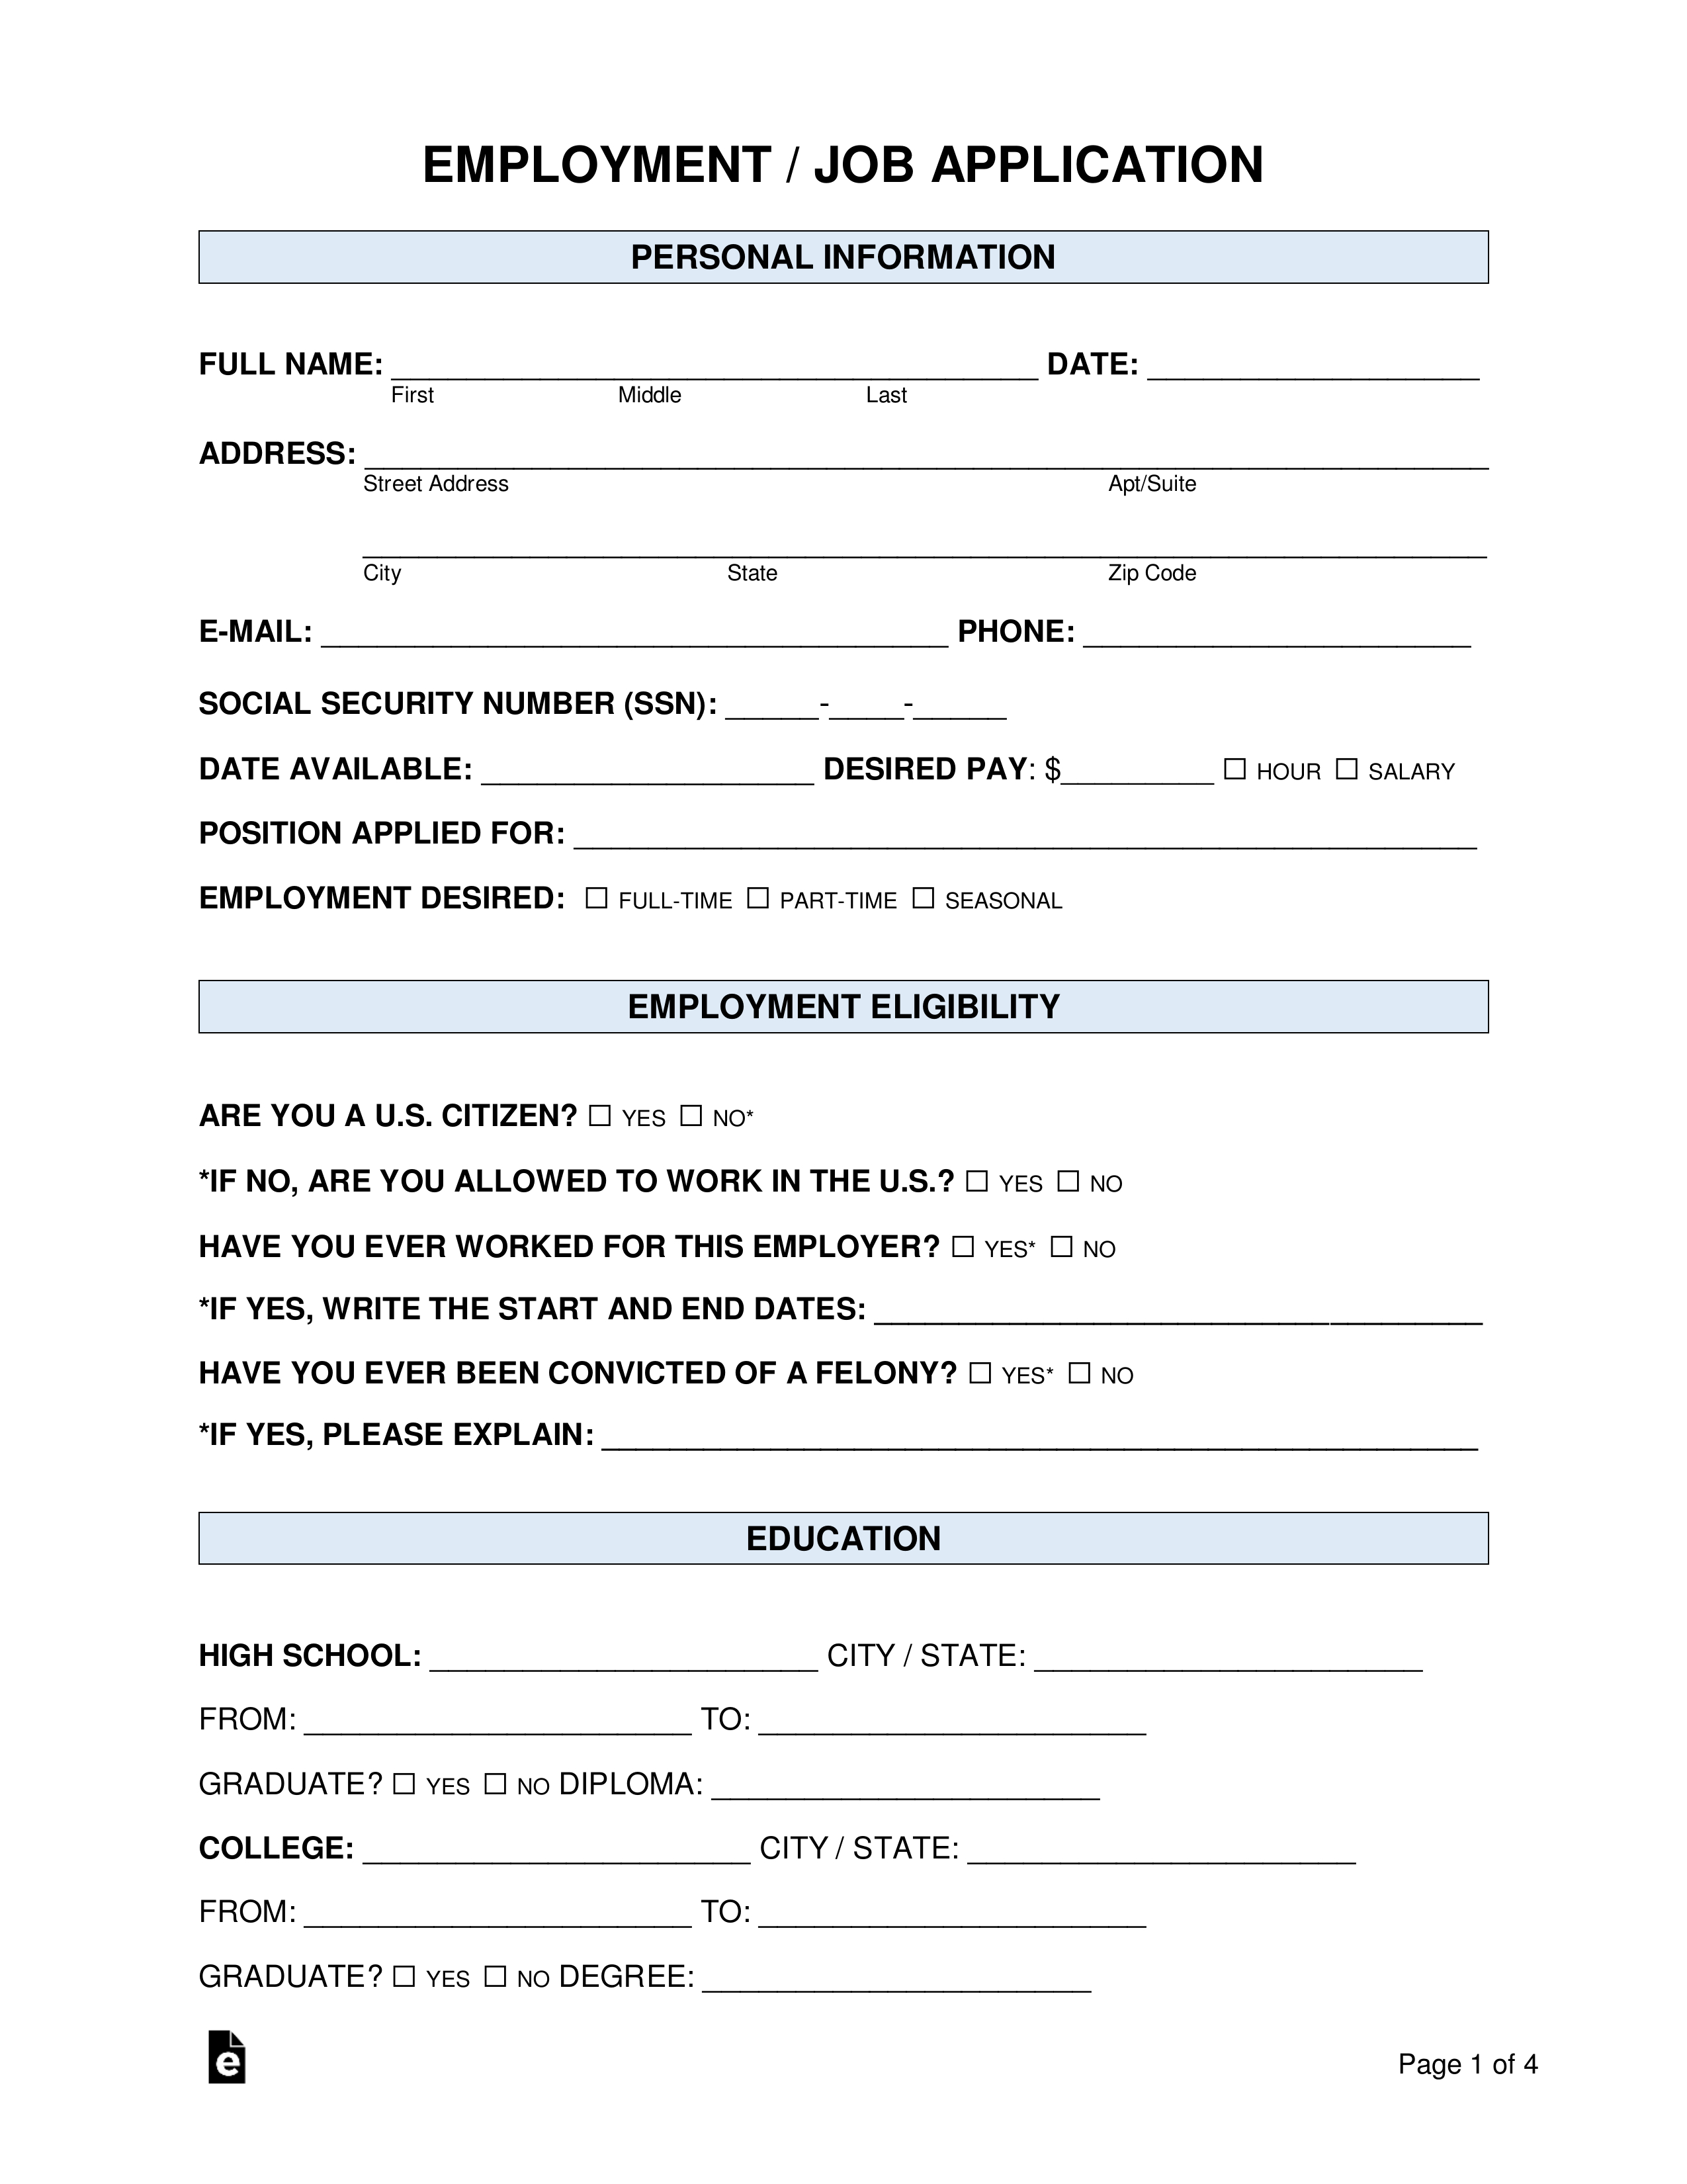 Free Job Application Form - Standard Template - Pdf | Word With Job Application Template Word